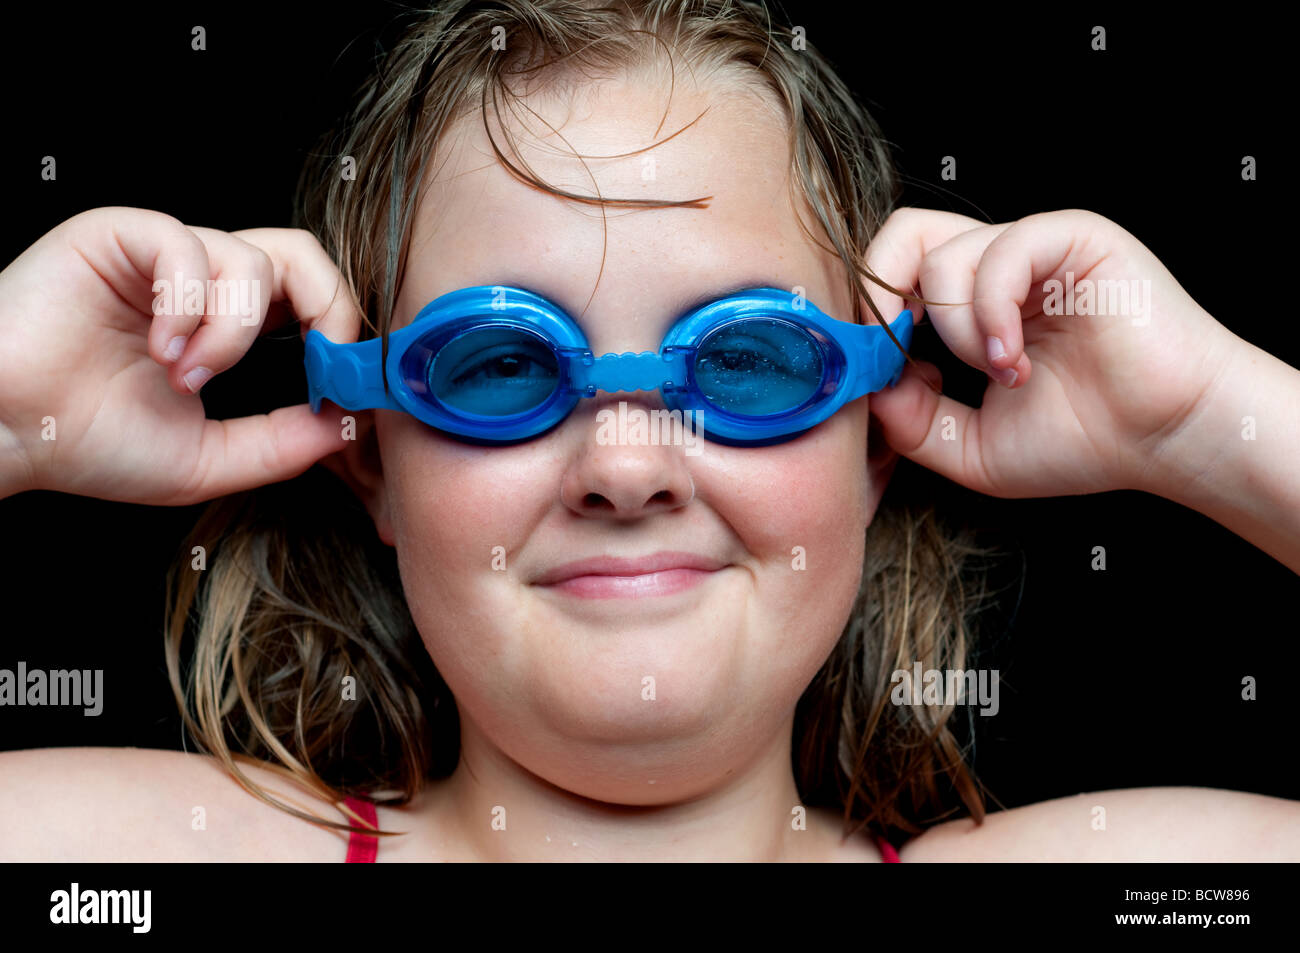 A horizontal image of a young girl adjusting her swimming goggles - Stock Image